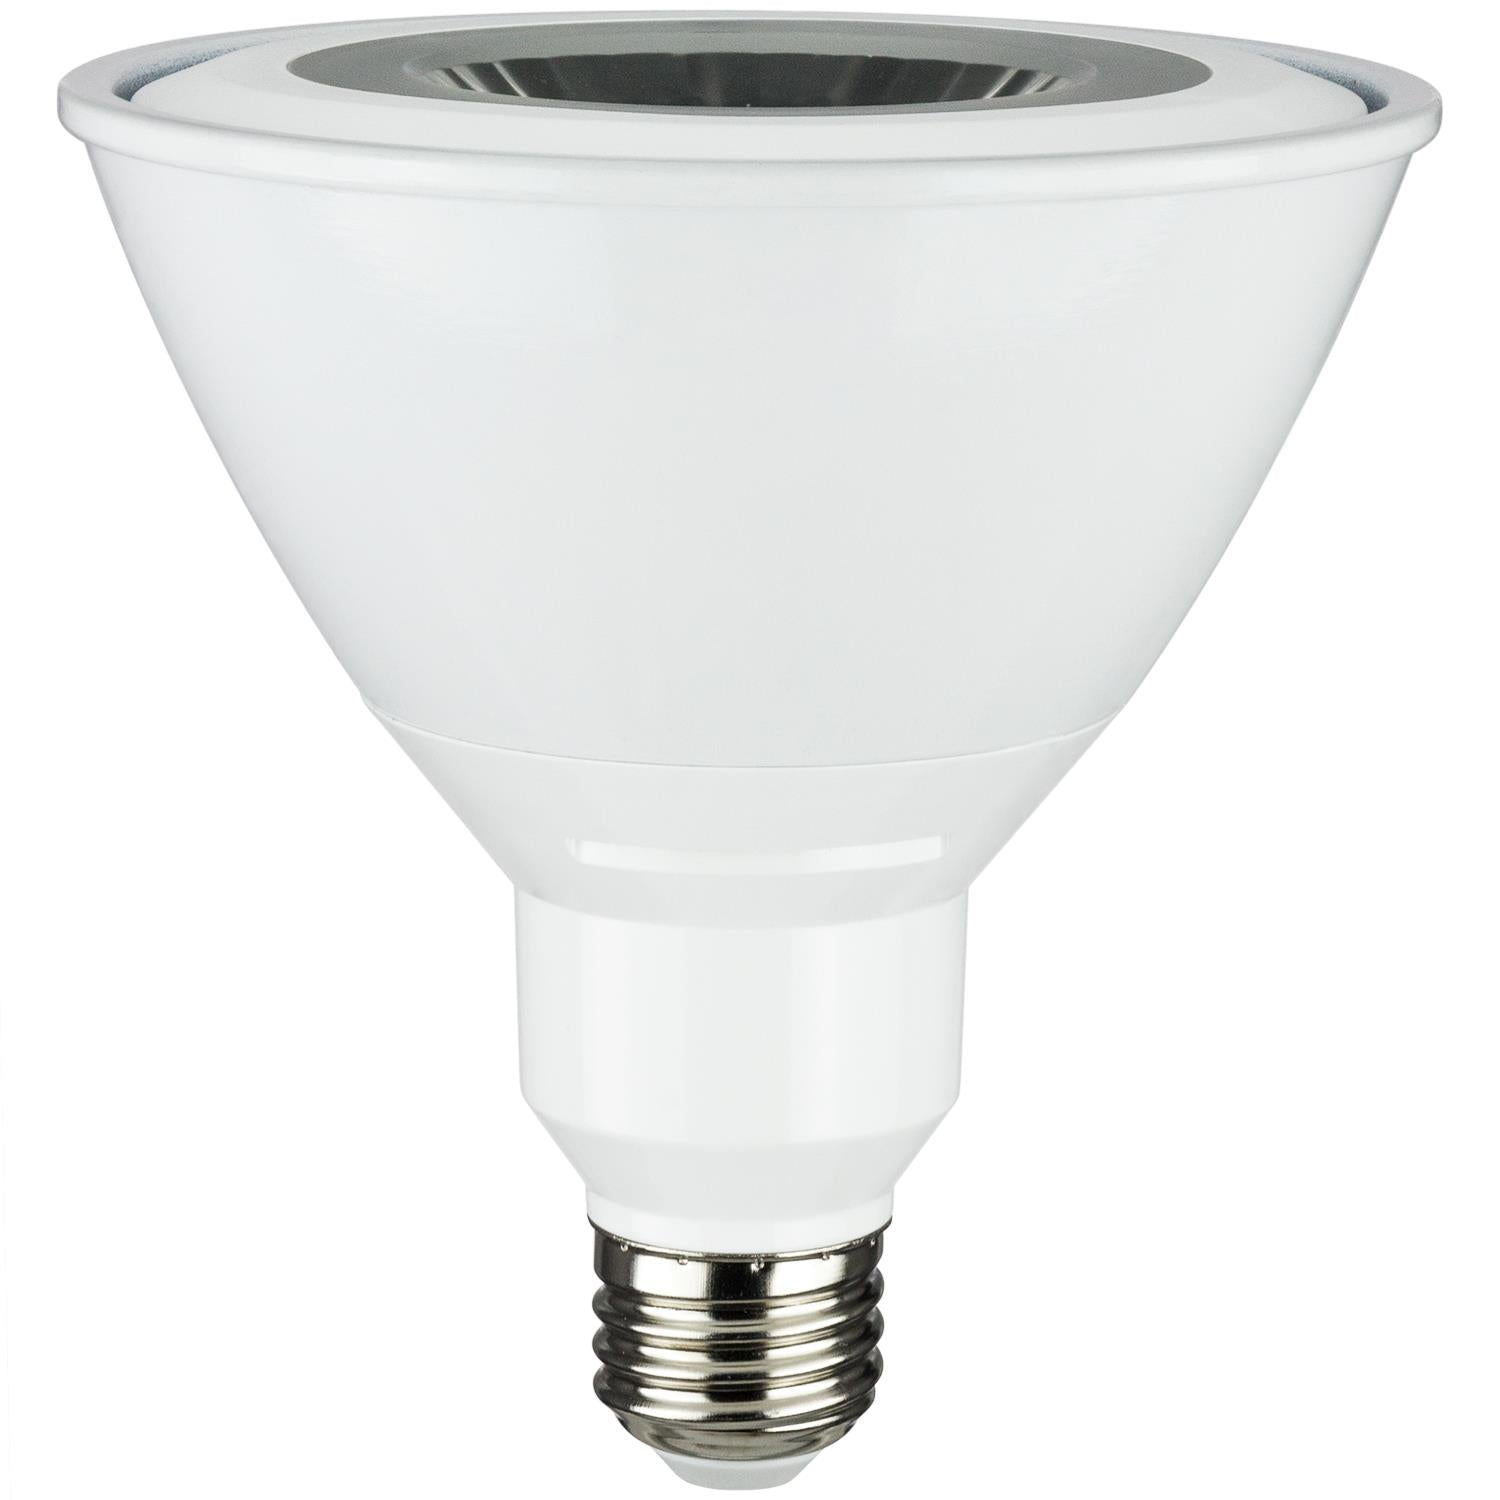 SUNLITE 88083-SU LED PAR38 Reflector 90cri Series 17w Light Bulb Warm White